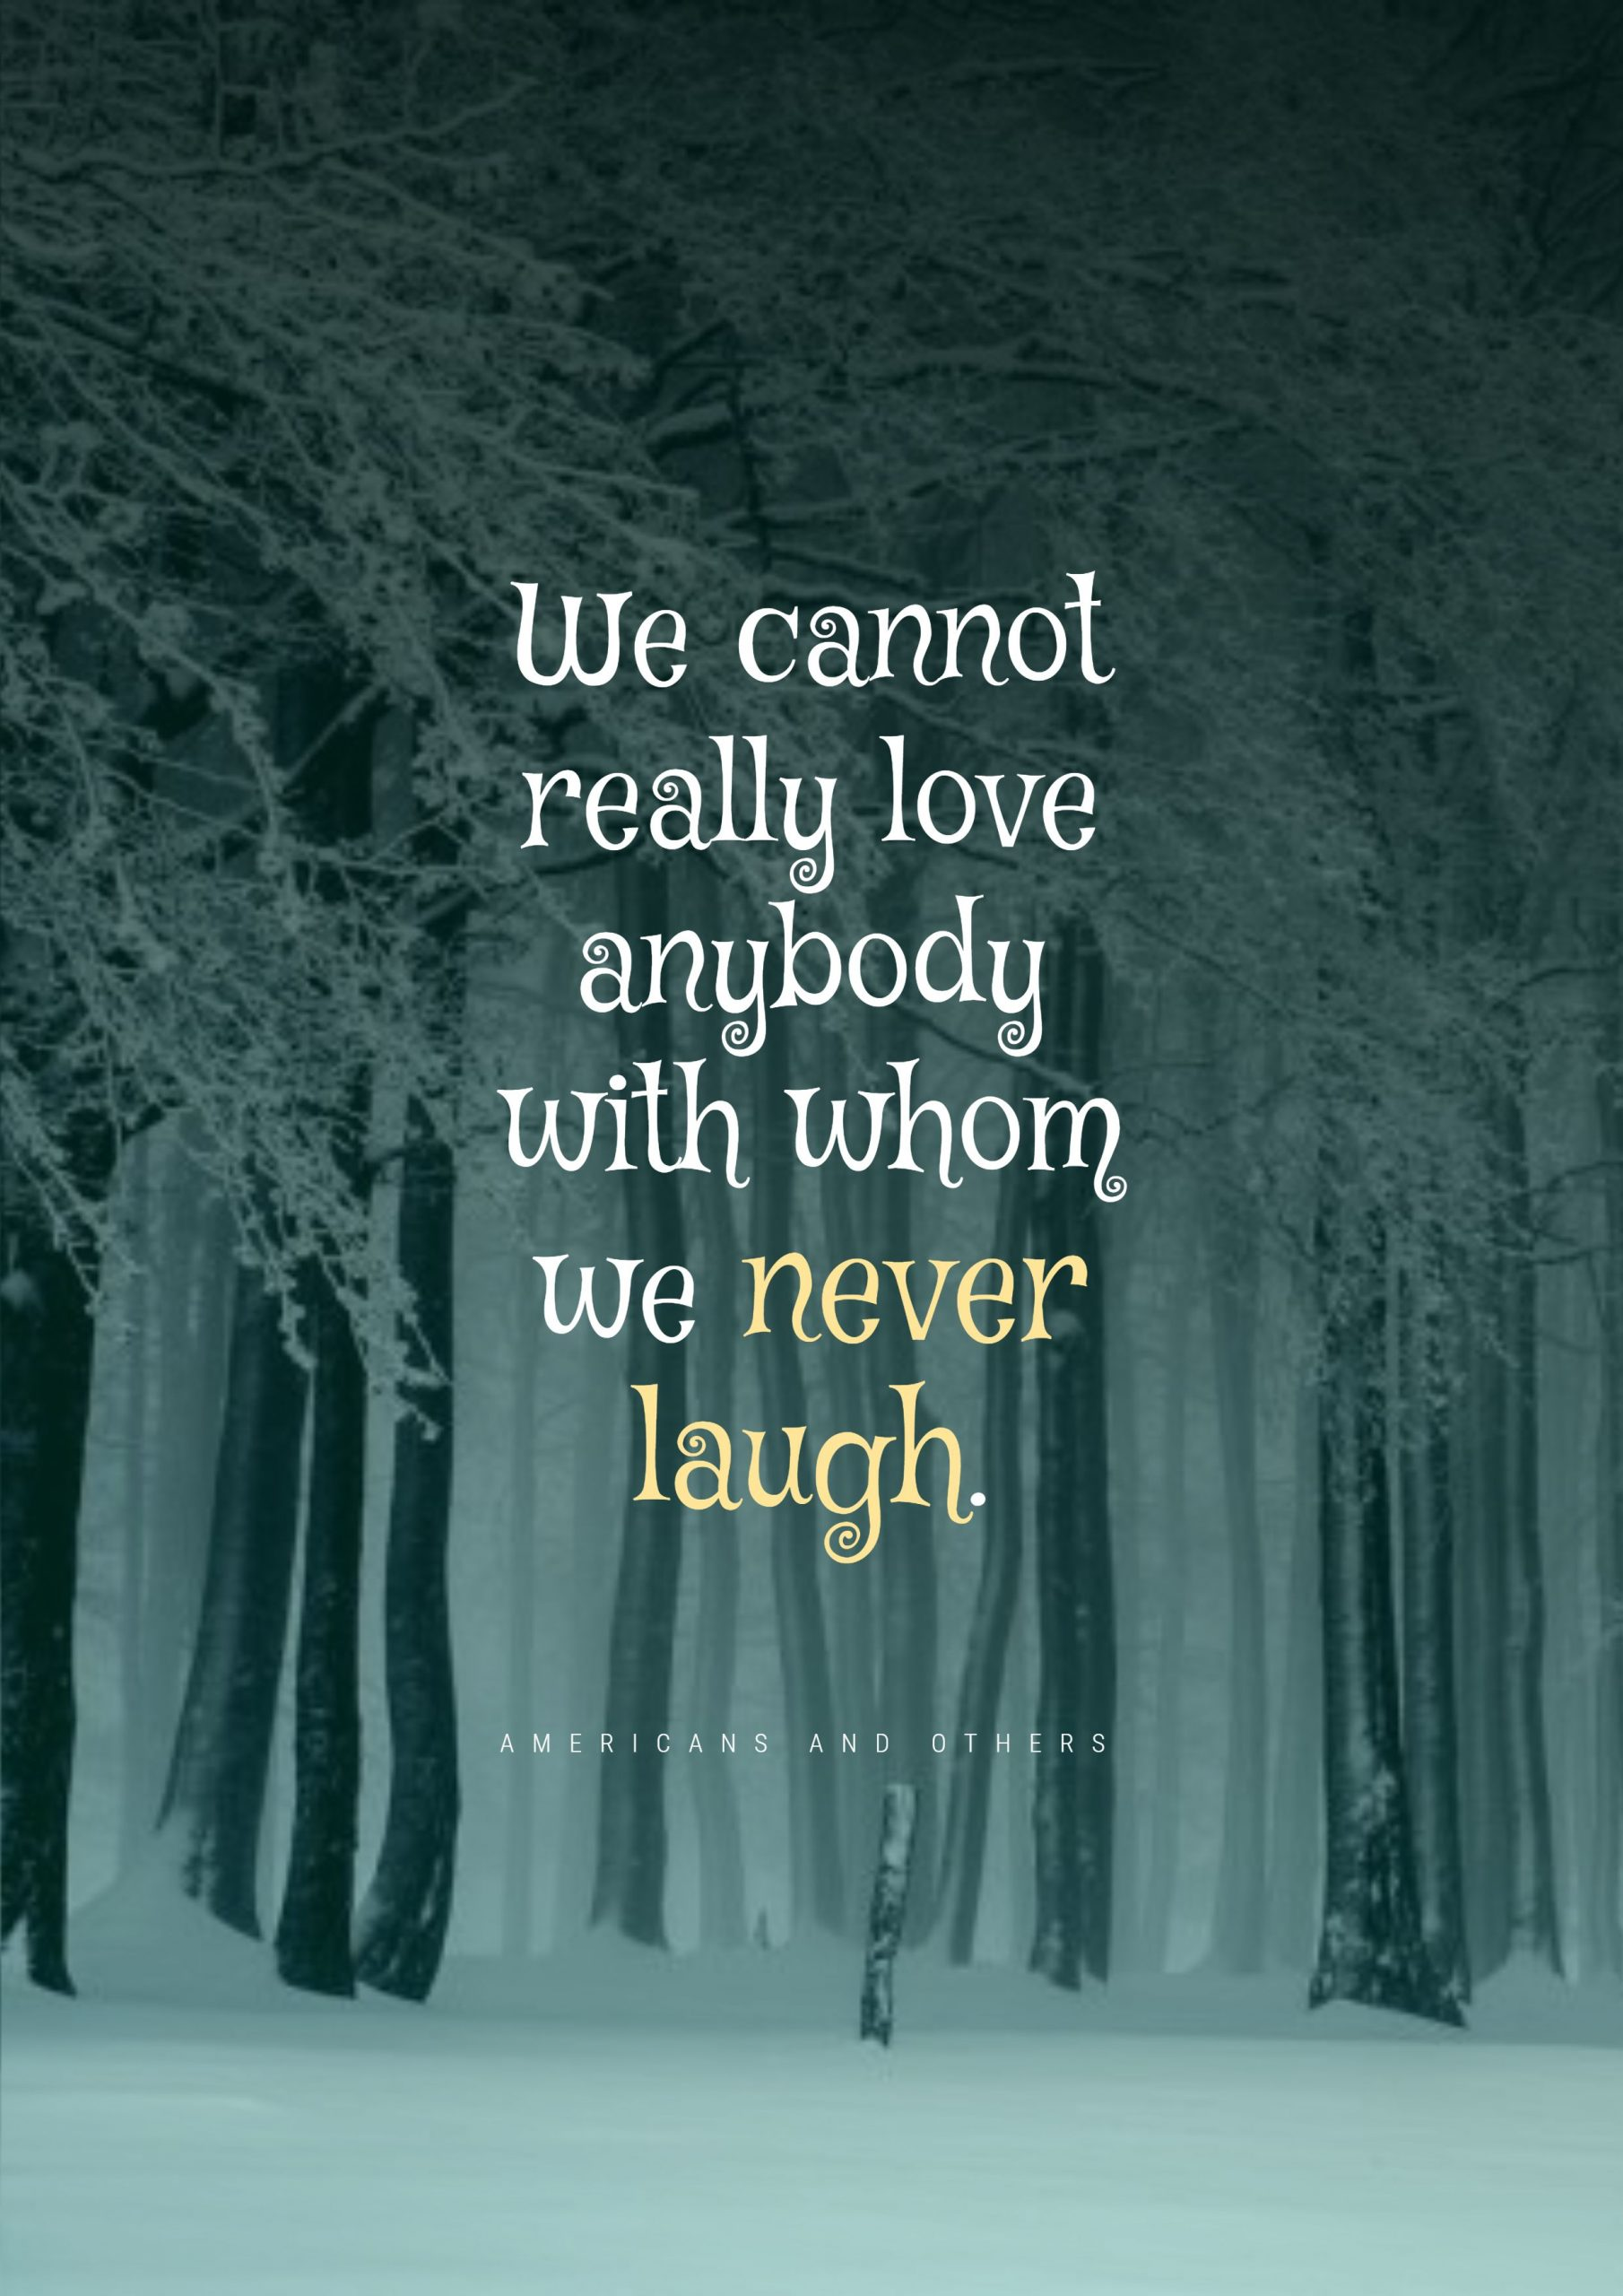 Quotes image of We cannot really love anybody with whom we never laugh.